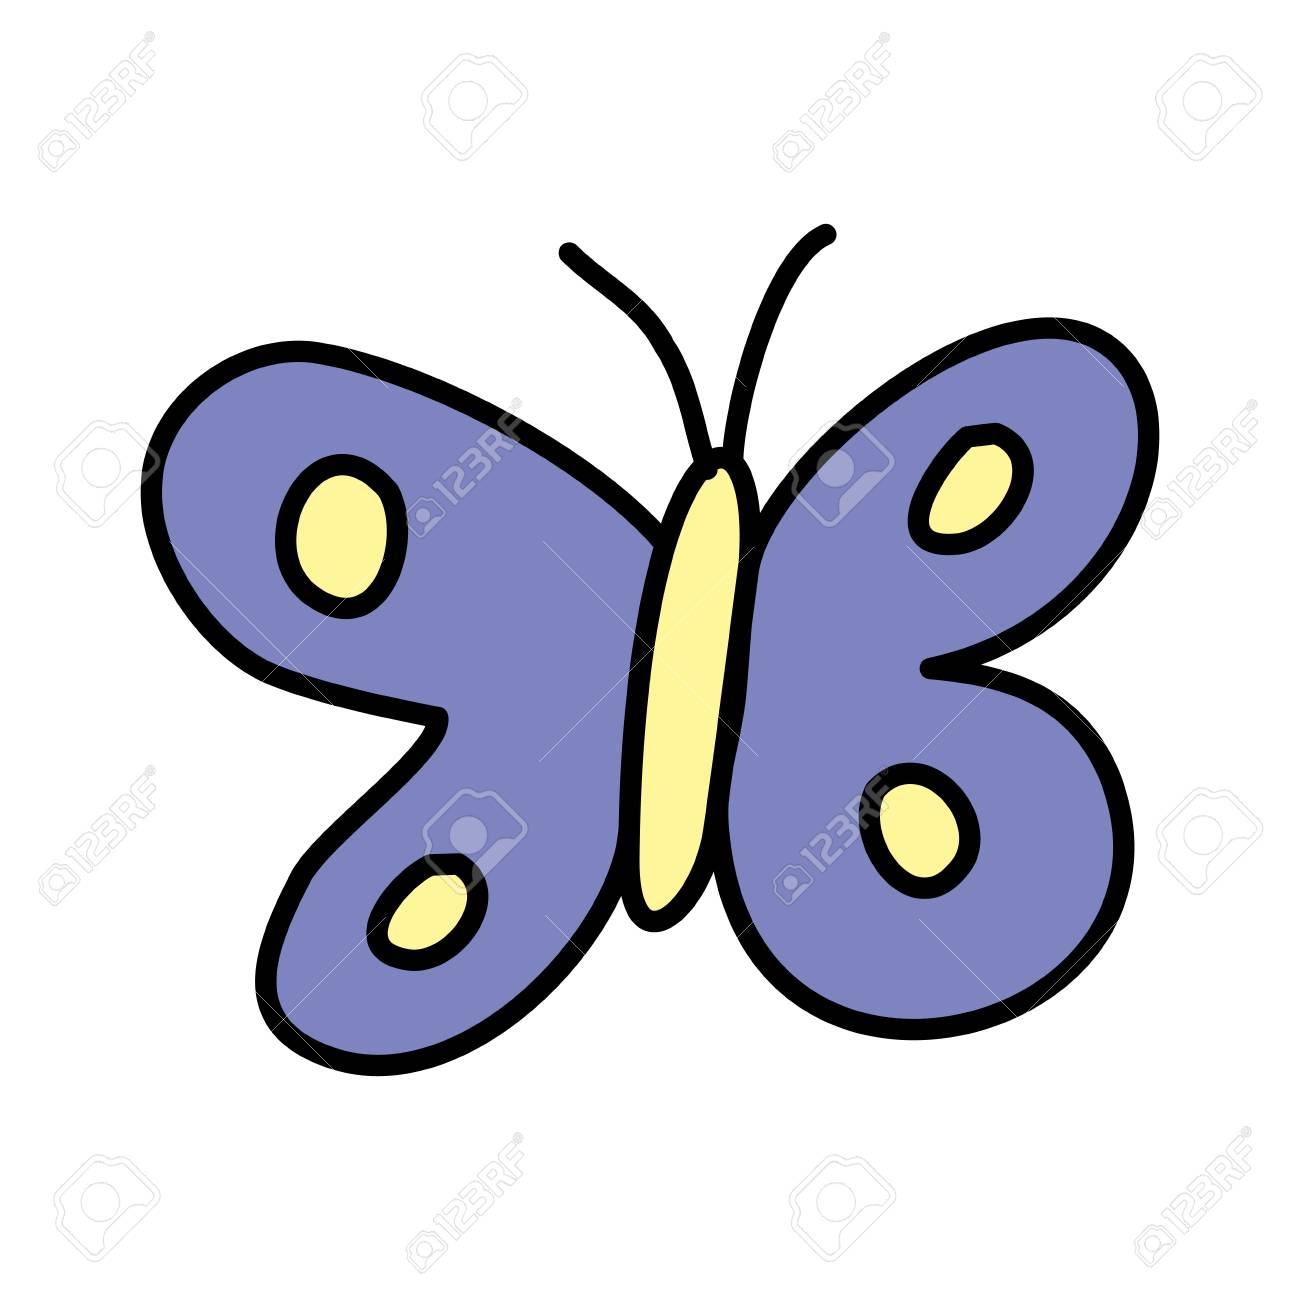 Cute butterfly drawing icon vector illustration design stock vector 109741600